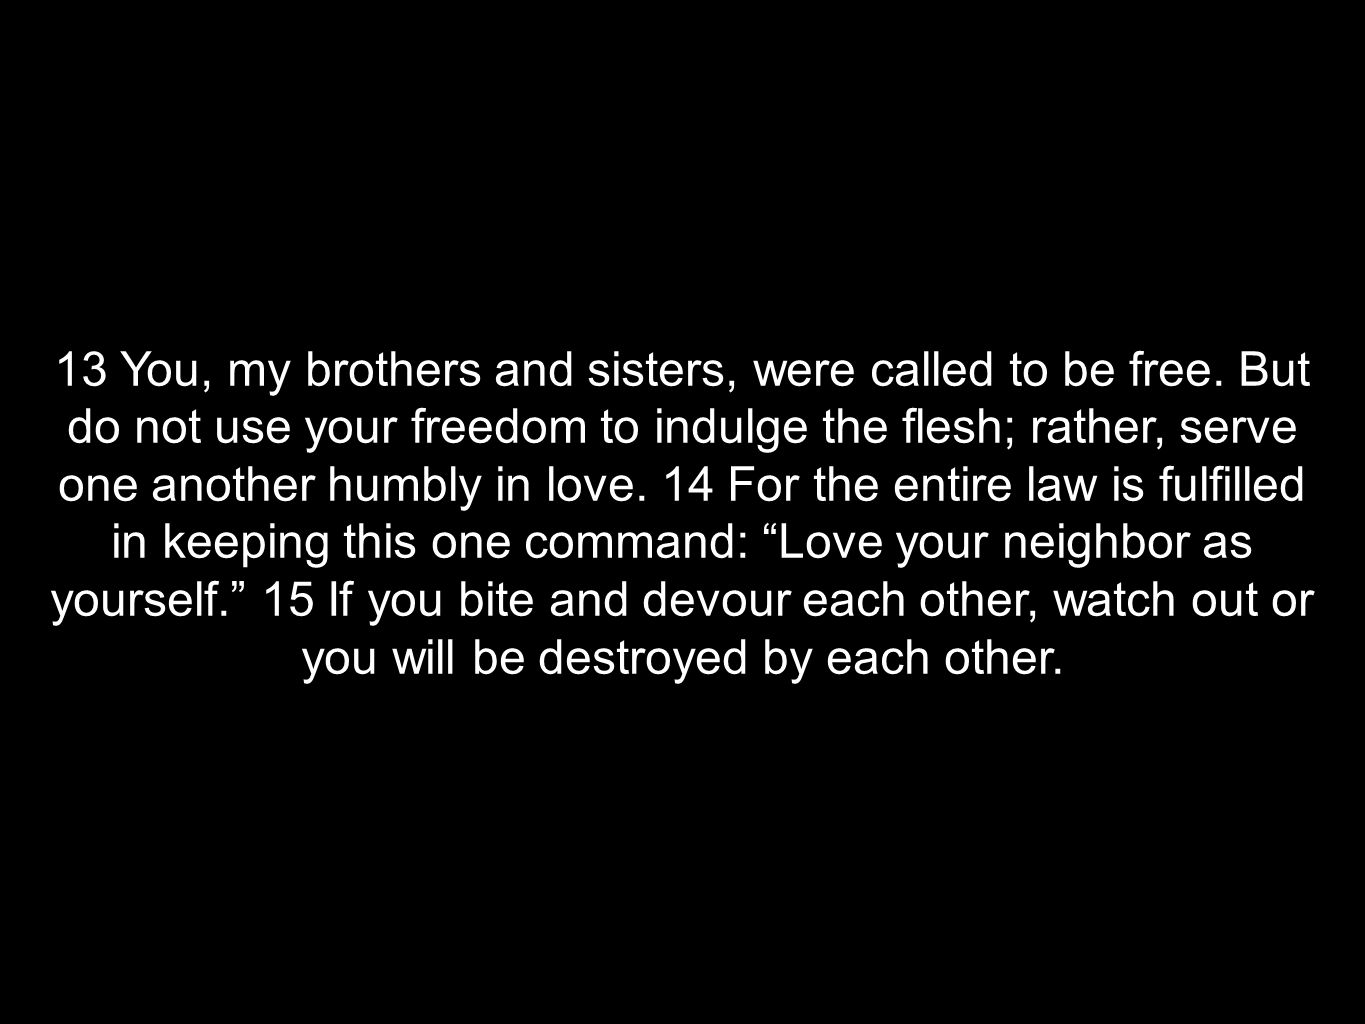 13 You, my brothers and sisters, were called to be free. But do not use your freedom to indulge the flesh; rather, serve one another humbly in love. 1